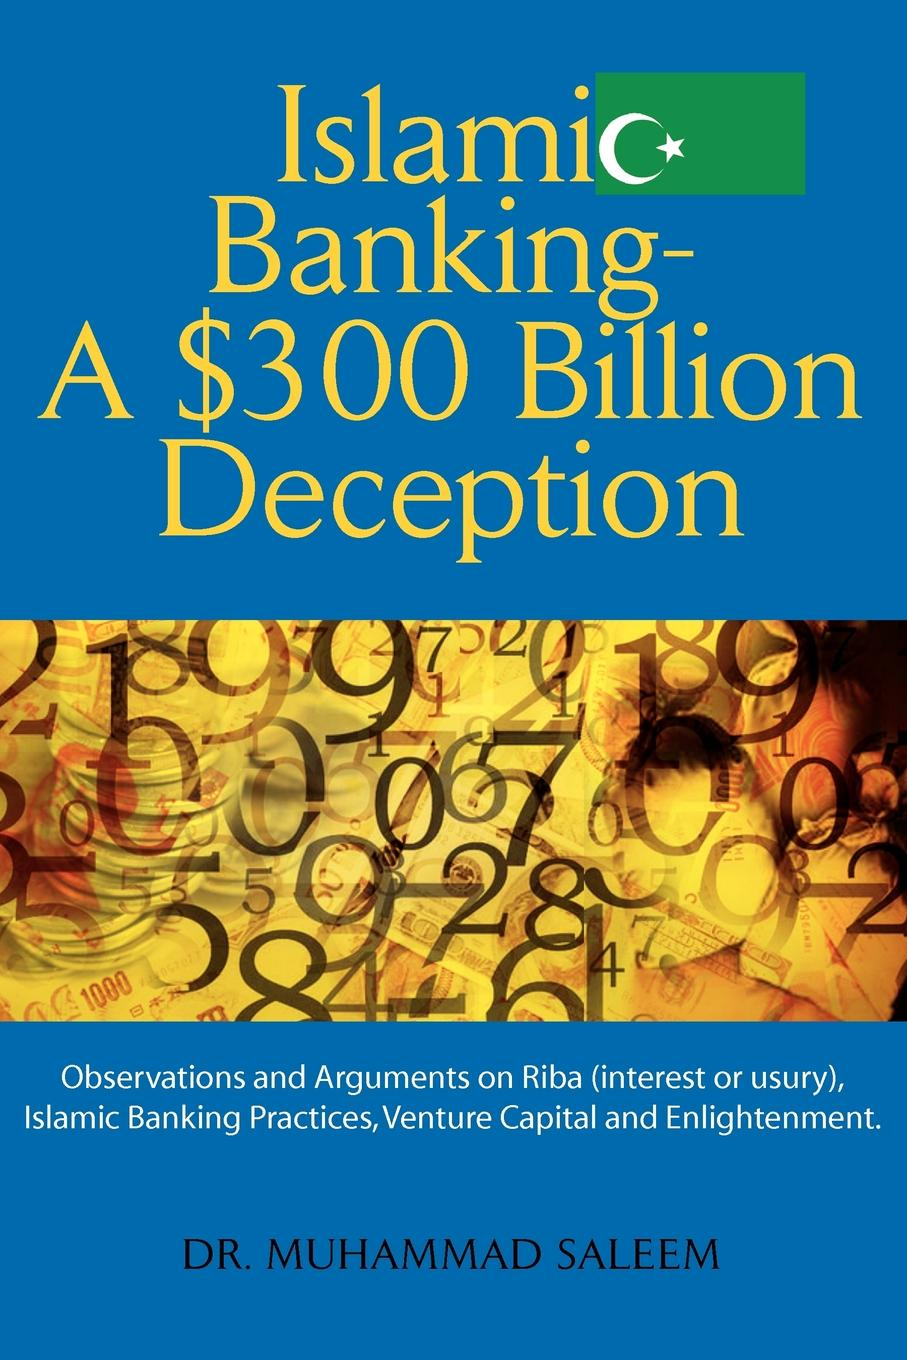 Muhammad Saleem Islamic Banking - A .300 Billion Deception